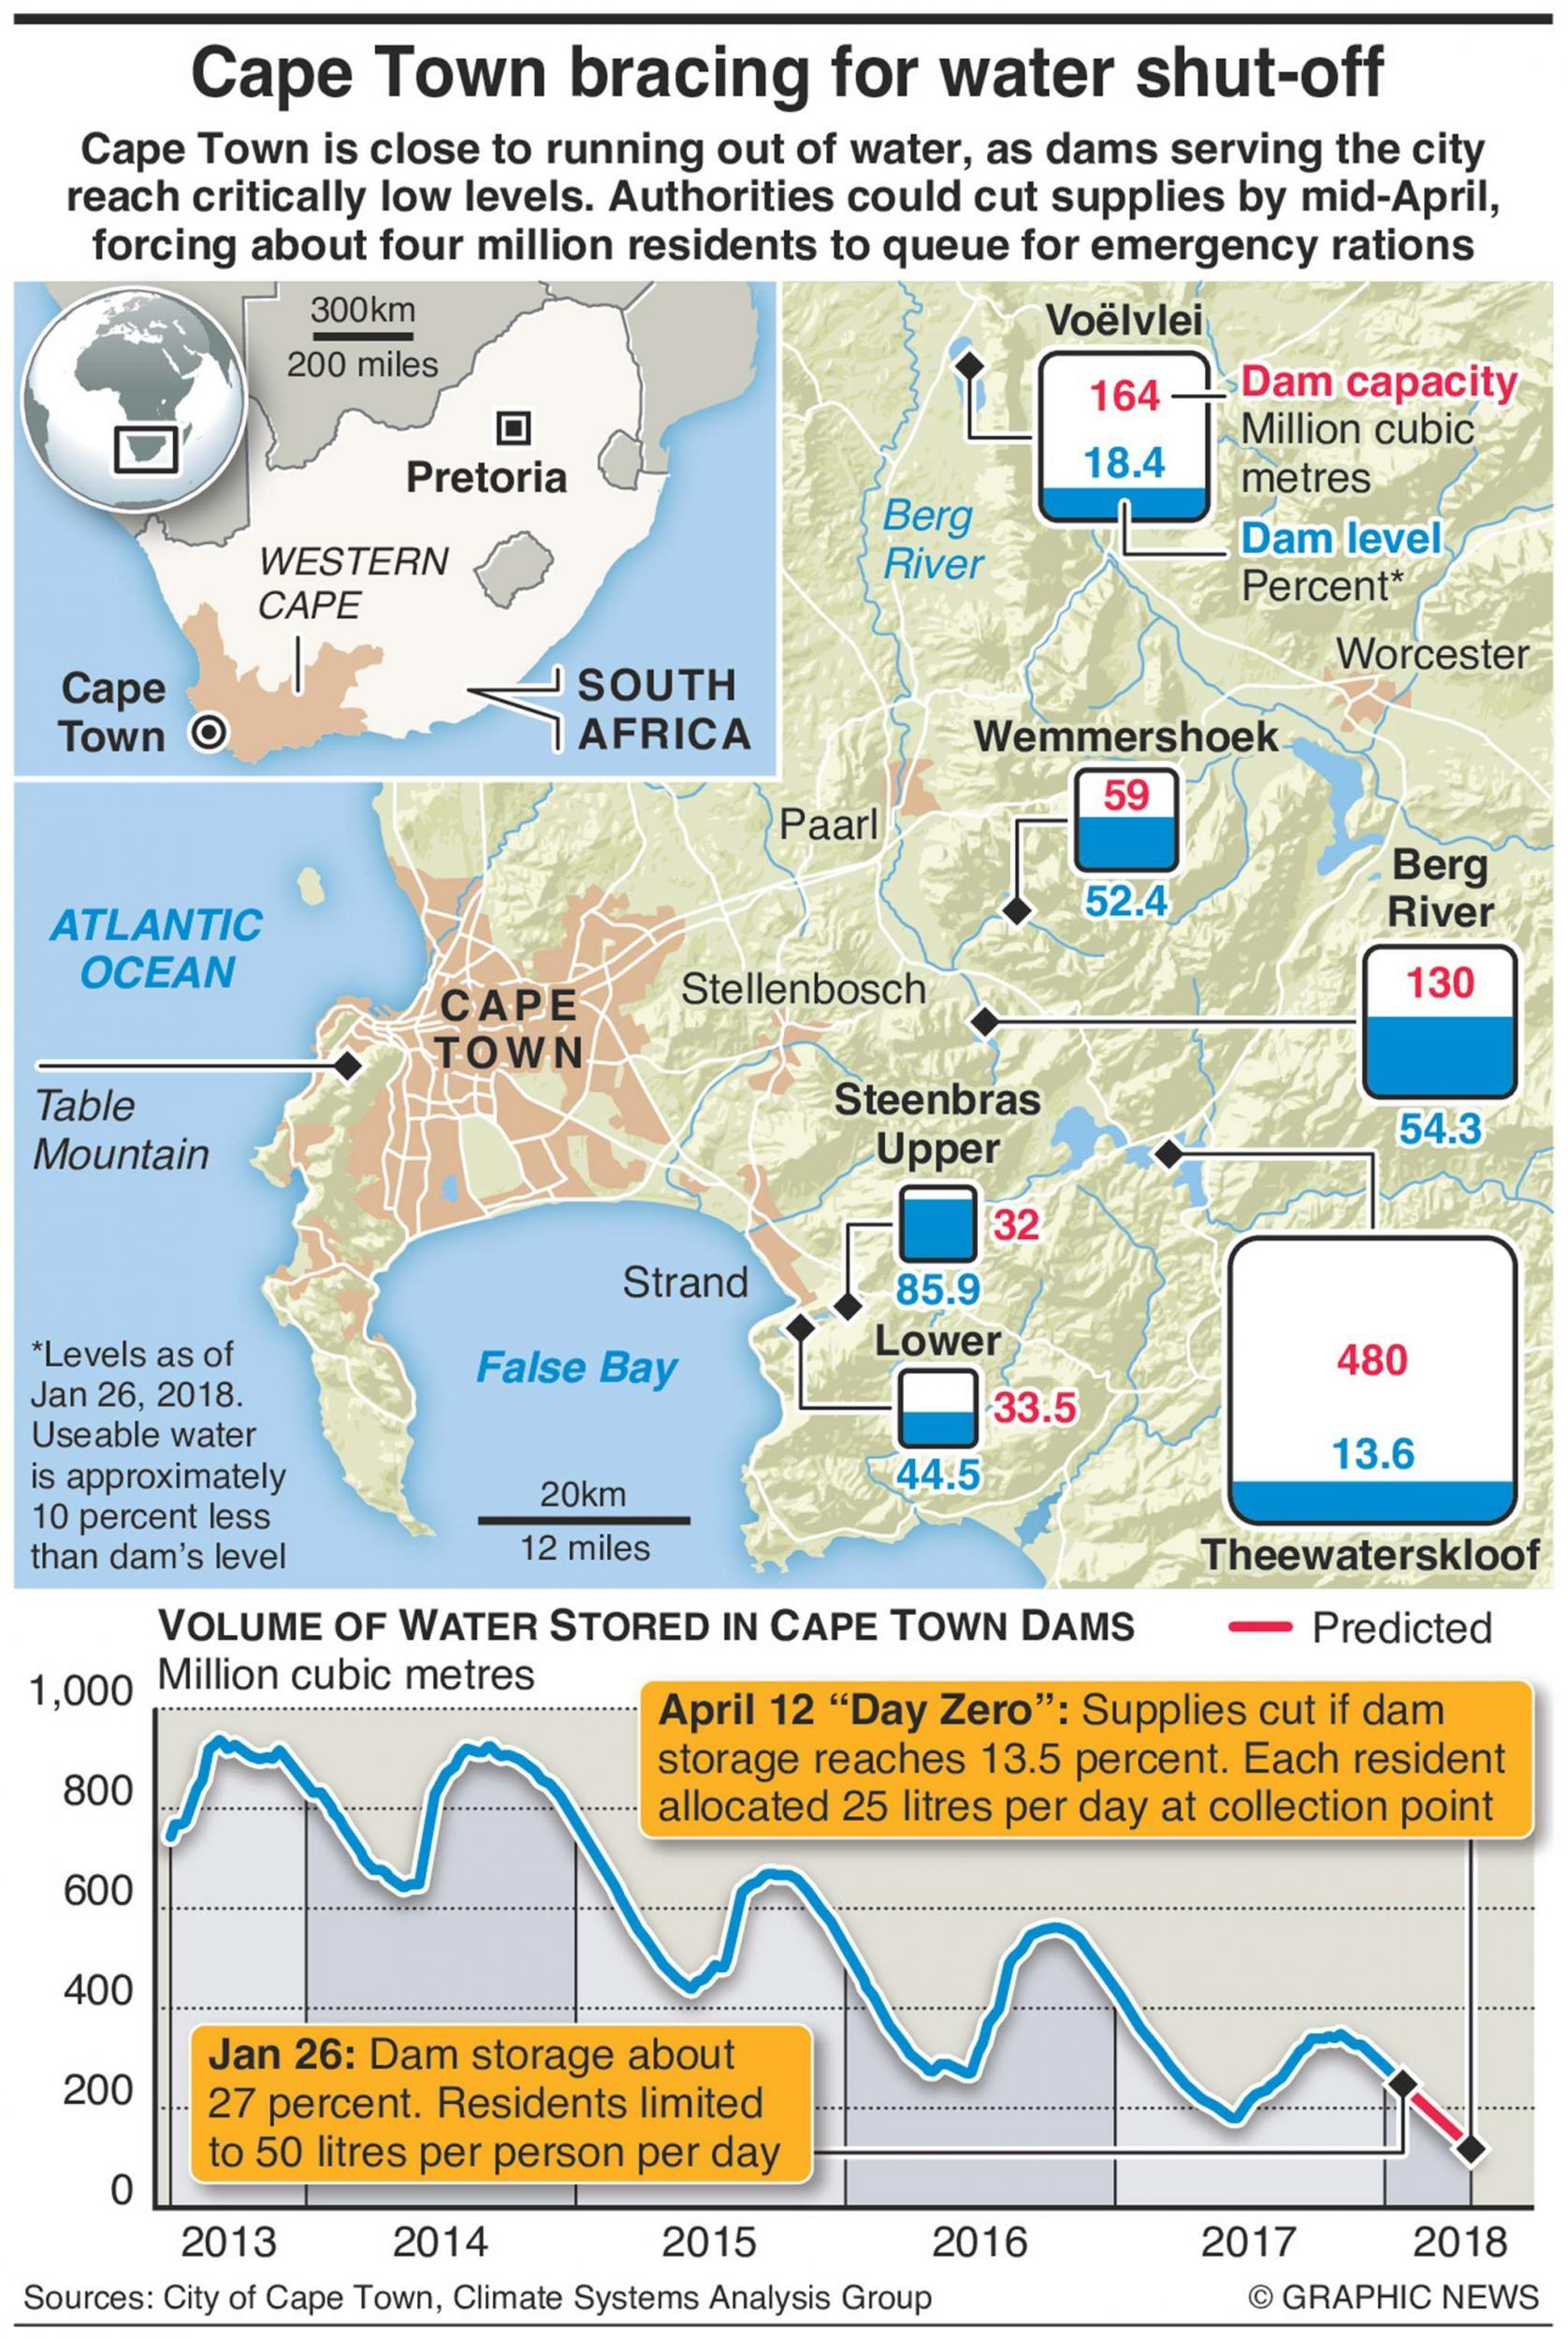 Day Zero: The city of Cape Town is about to run out of water